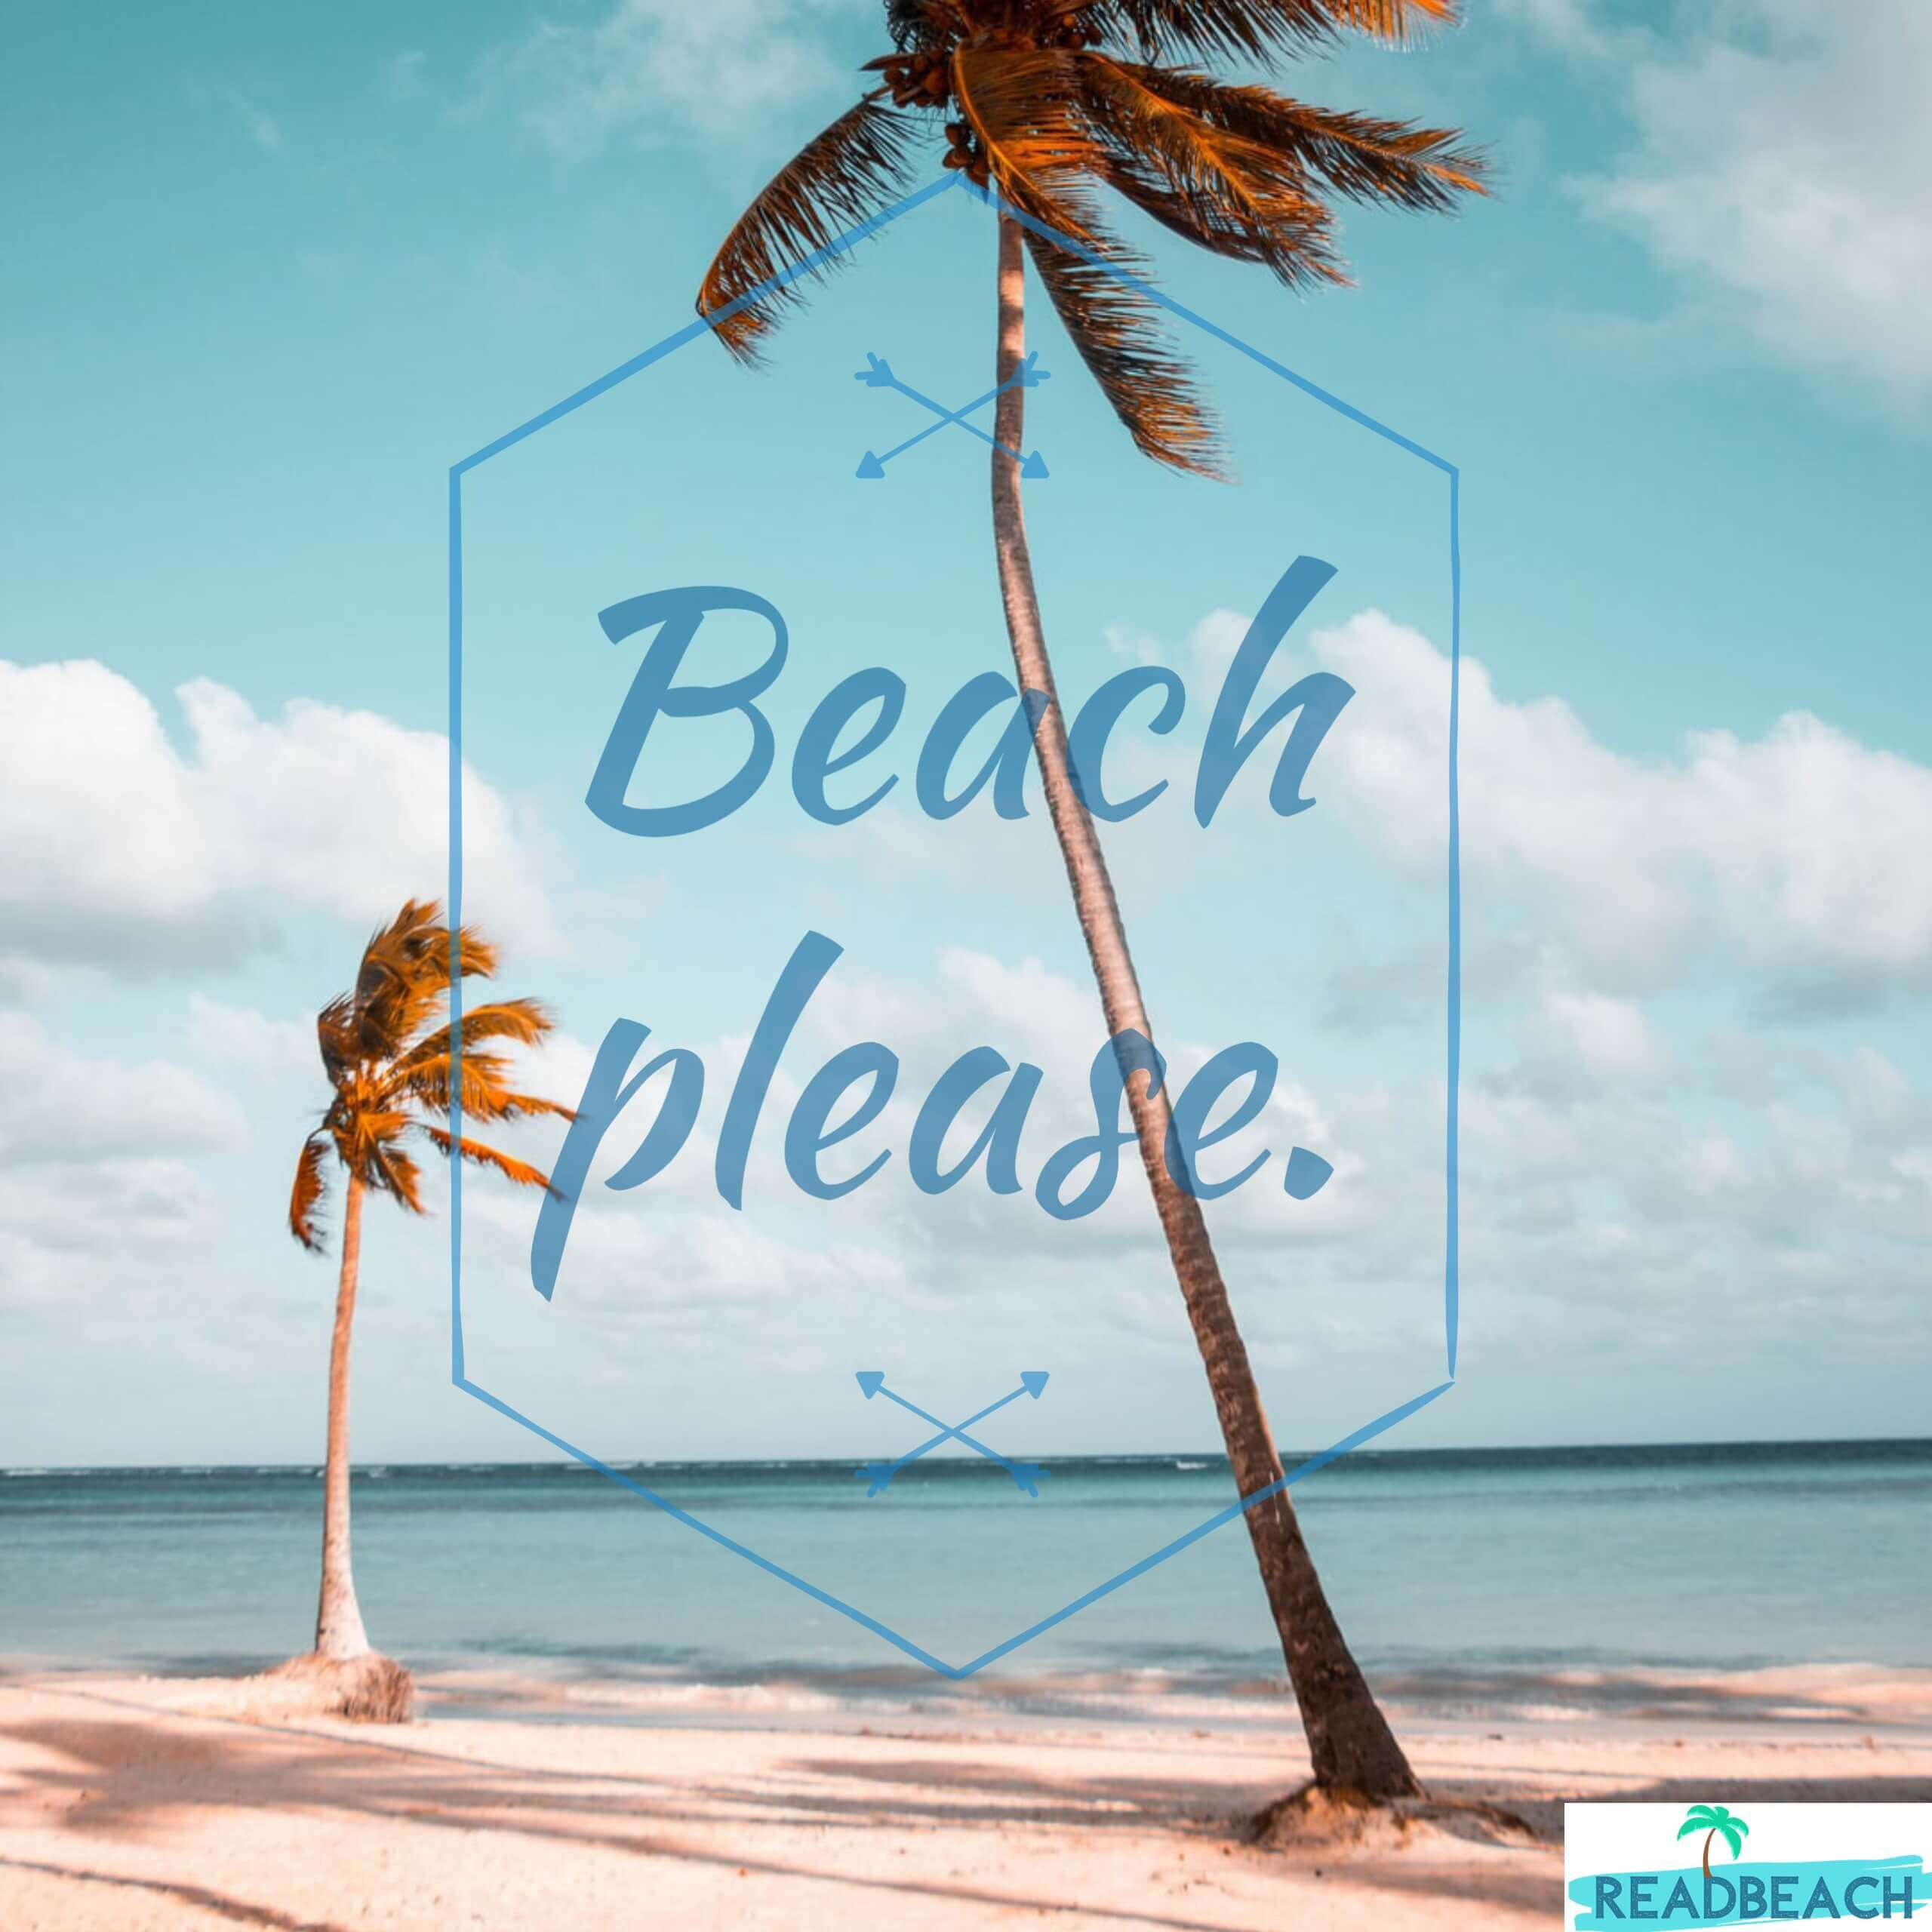 6 Ease Quotes - Beach please.